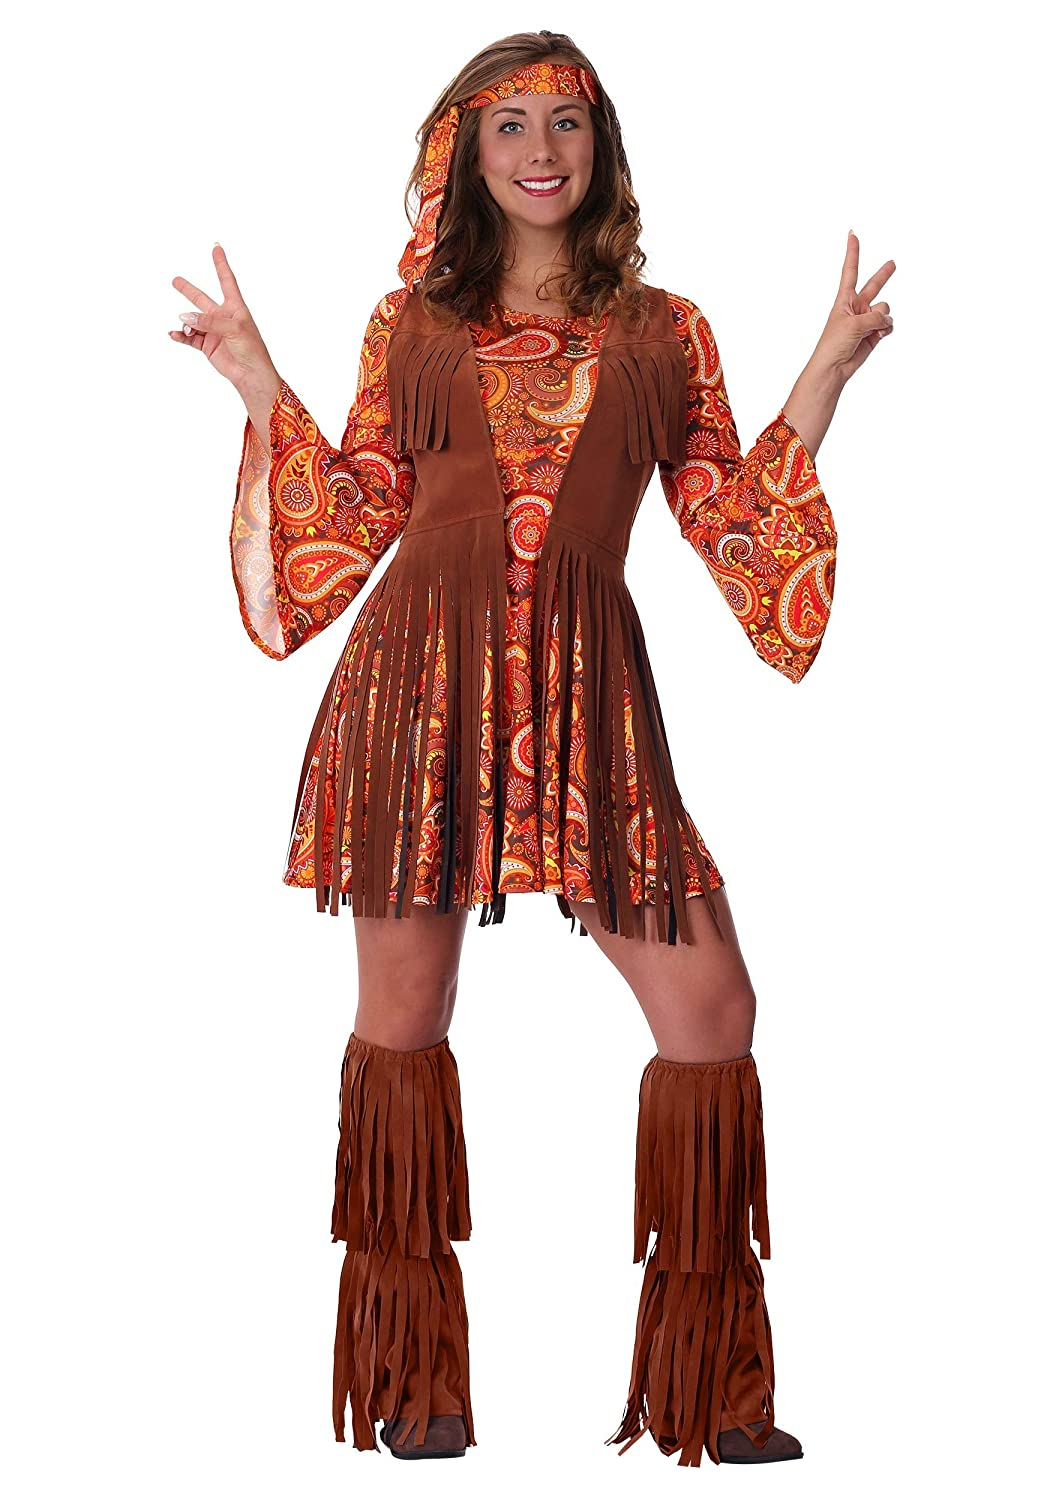 Hippie Dress | Long, Boho, Vintage, 70s Womens Fringe Hippie Costume $44.99 AT vintagedancer.com